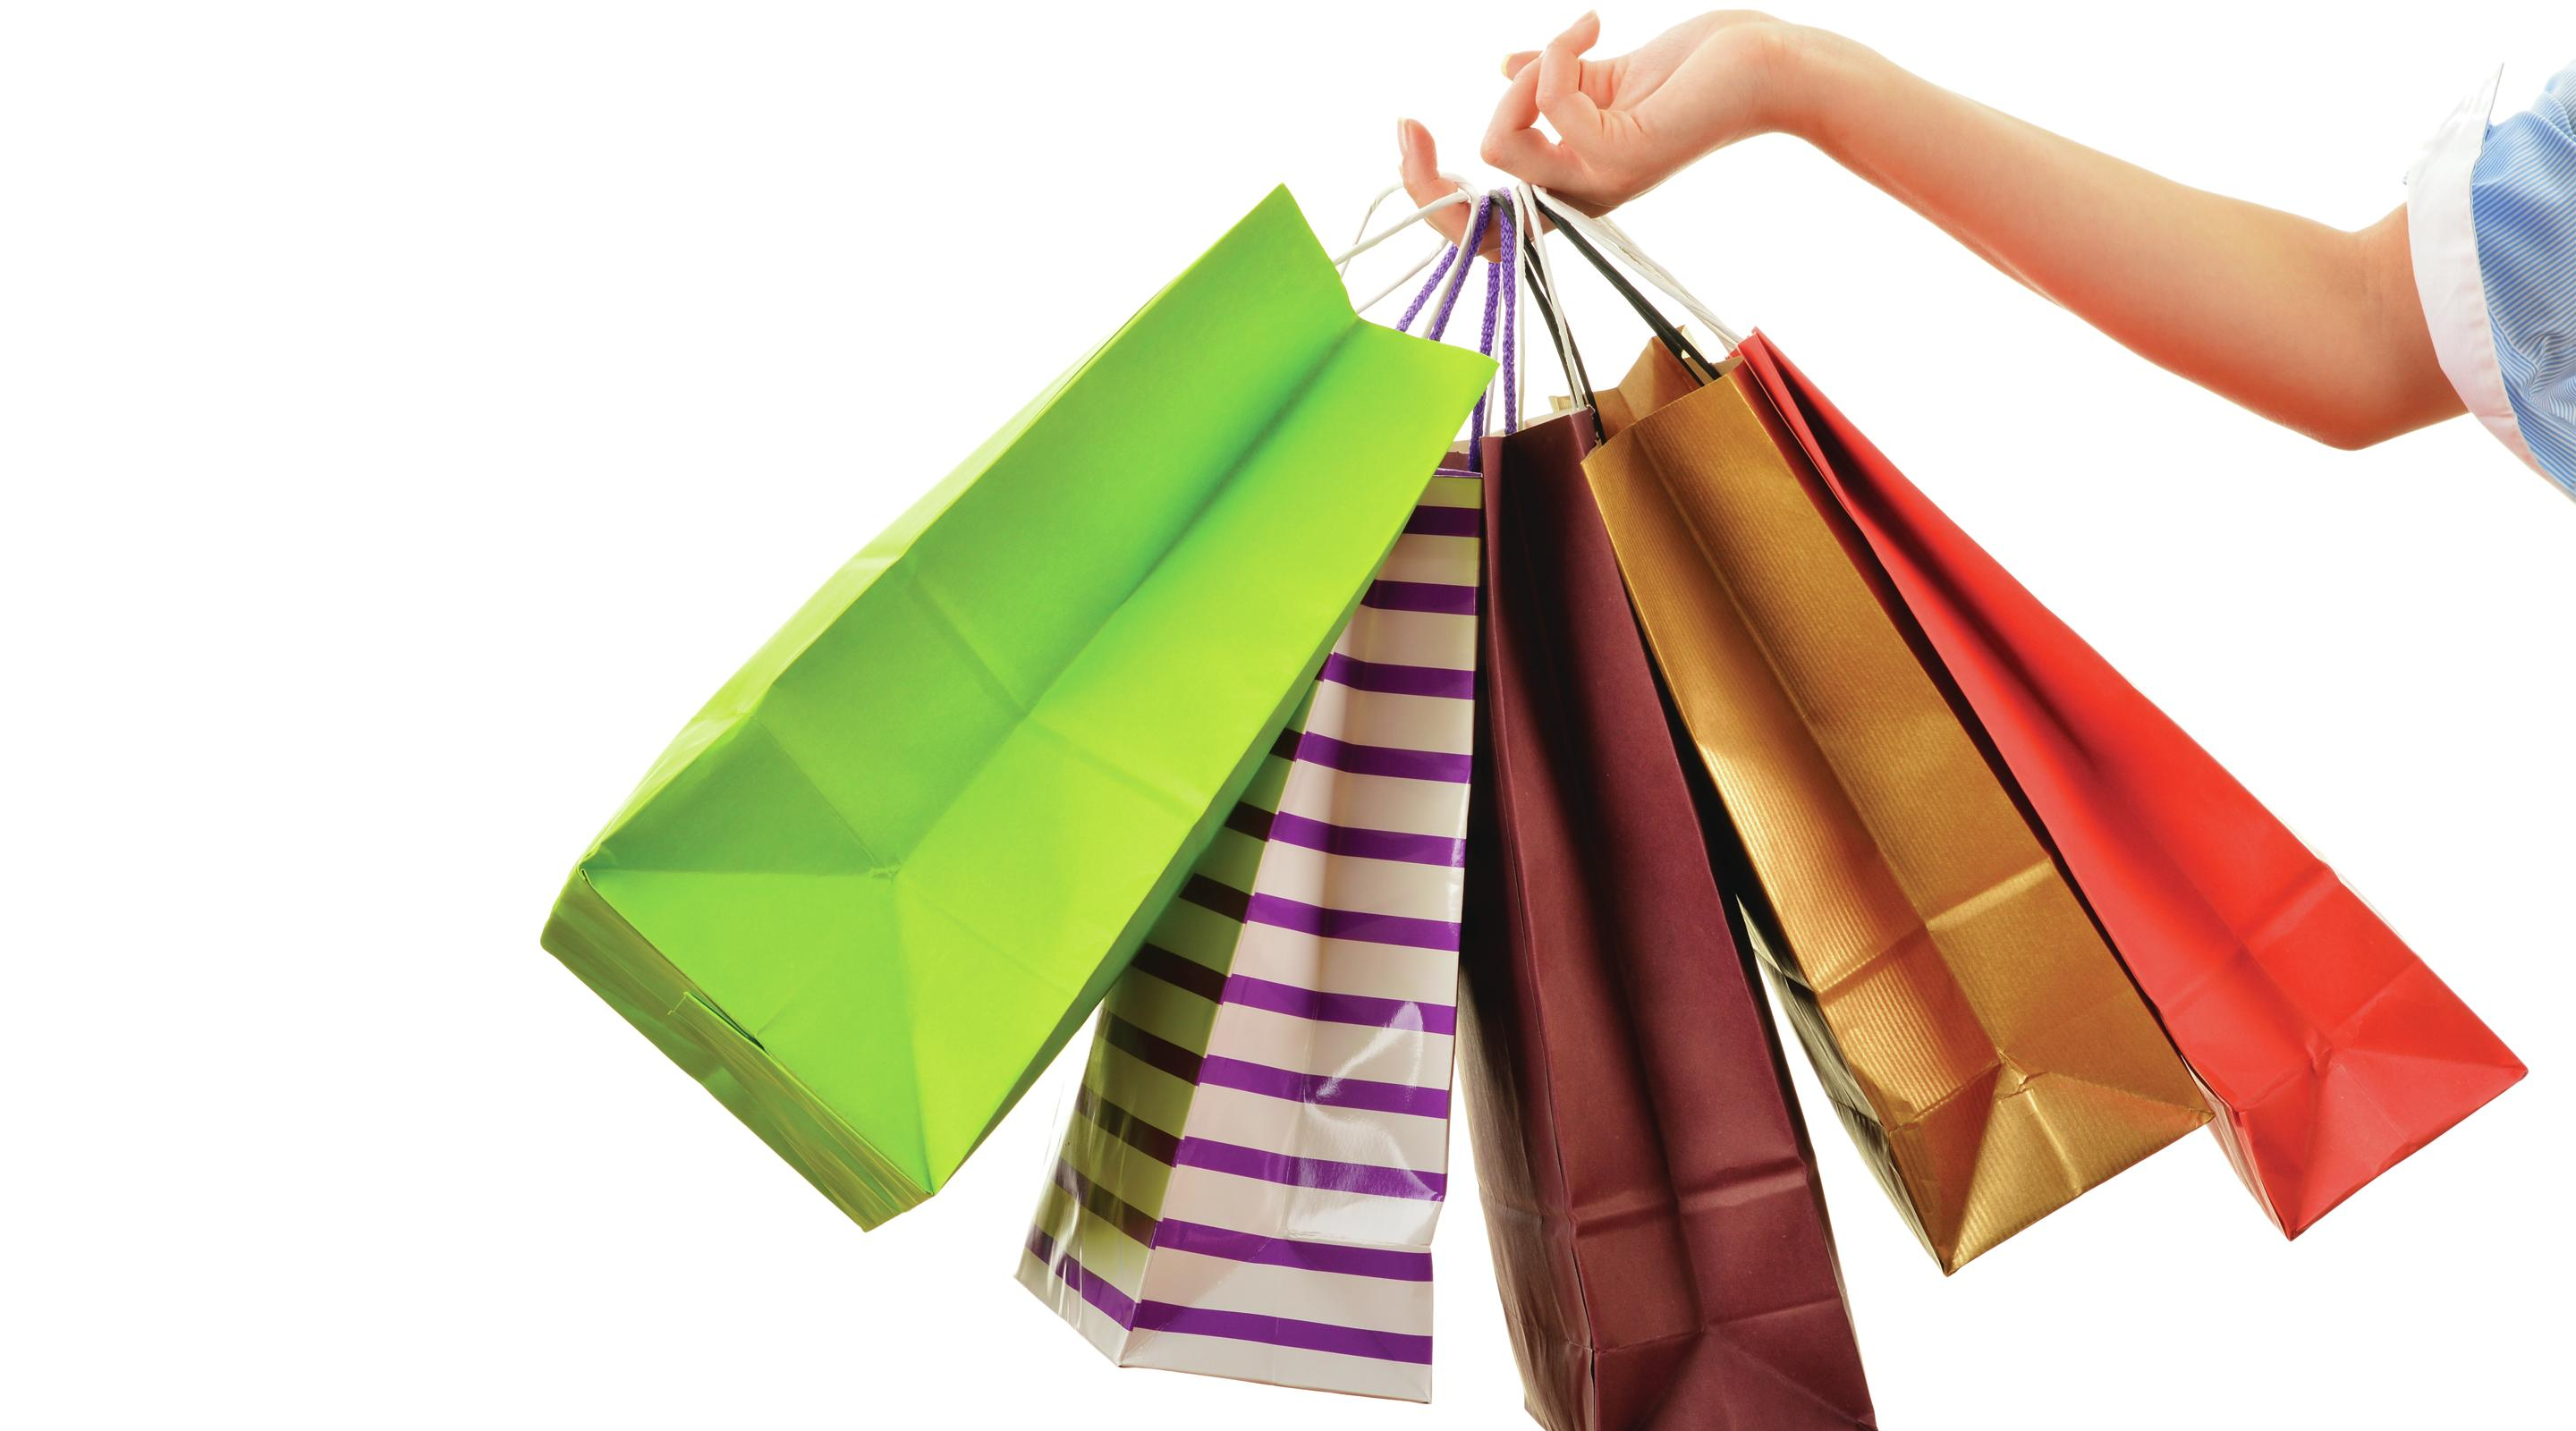 How to Buy a Handbag to a Woman That She Will Love it Lady's Shopping Guide